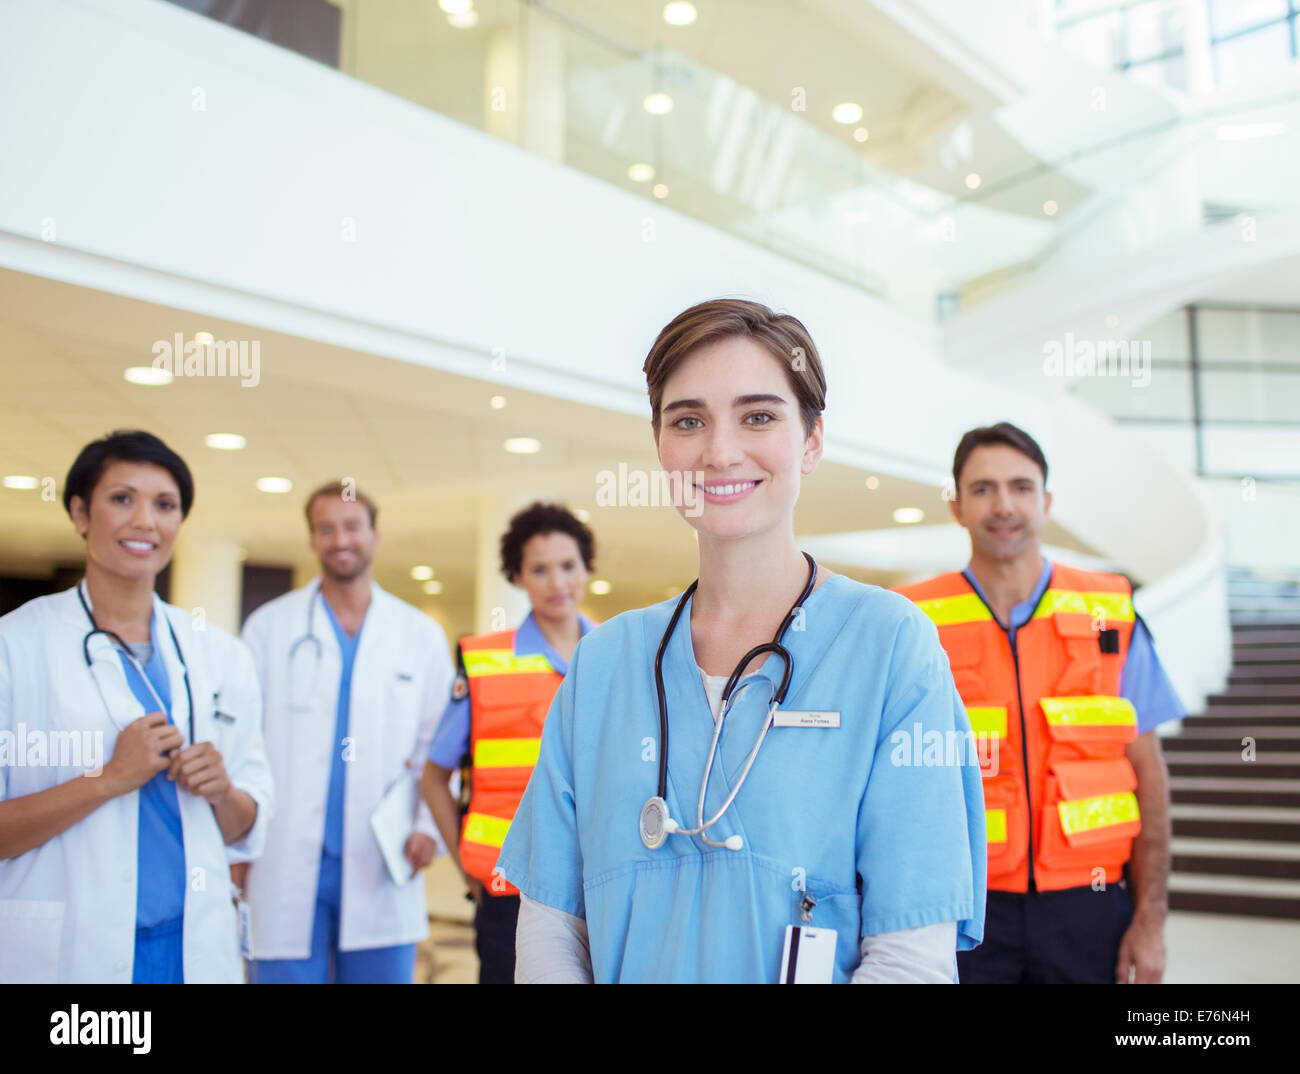 Doctors, nurses and paramedics smiling in hospital Stock Photo